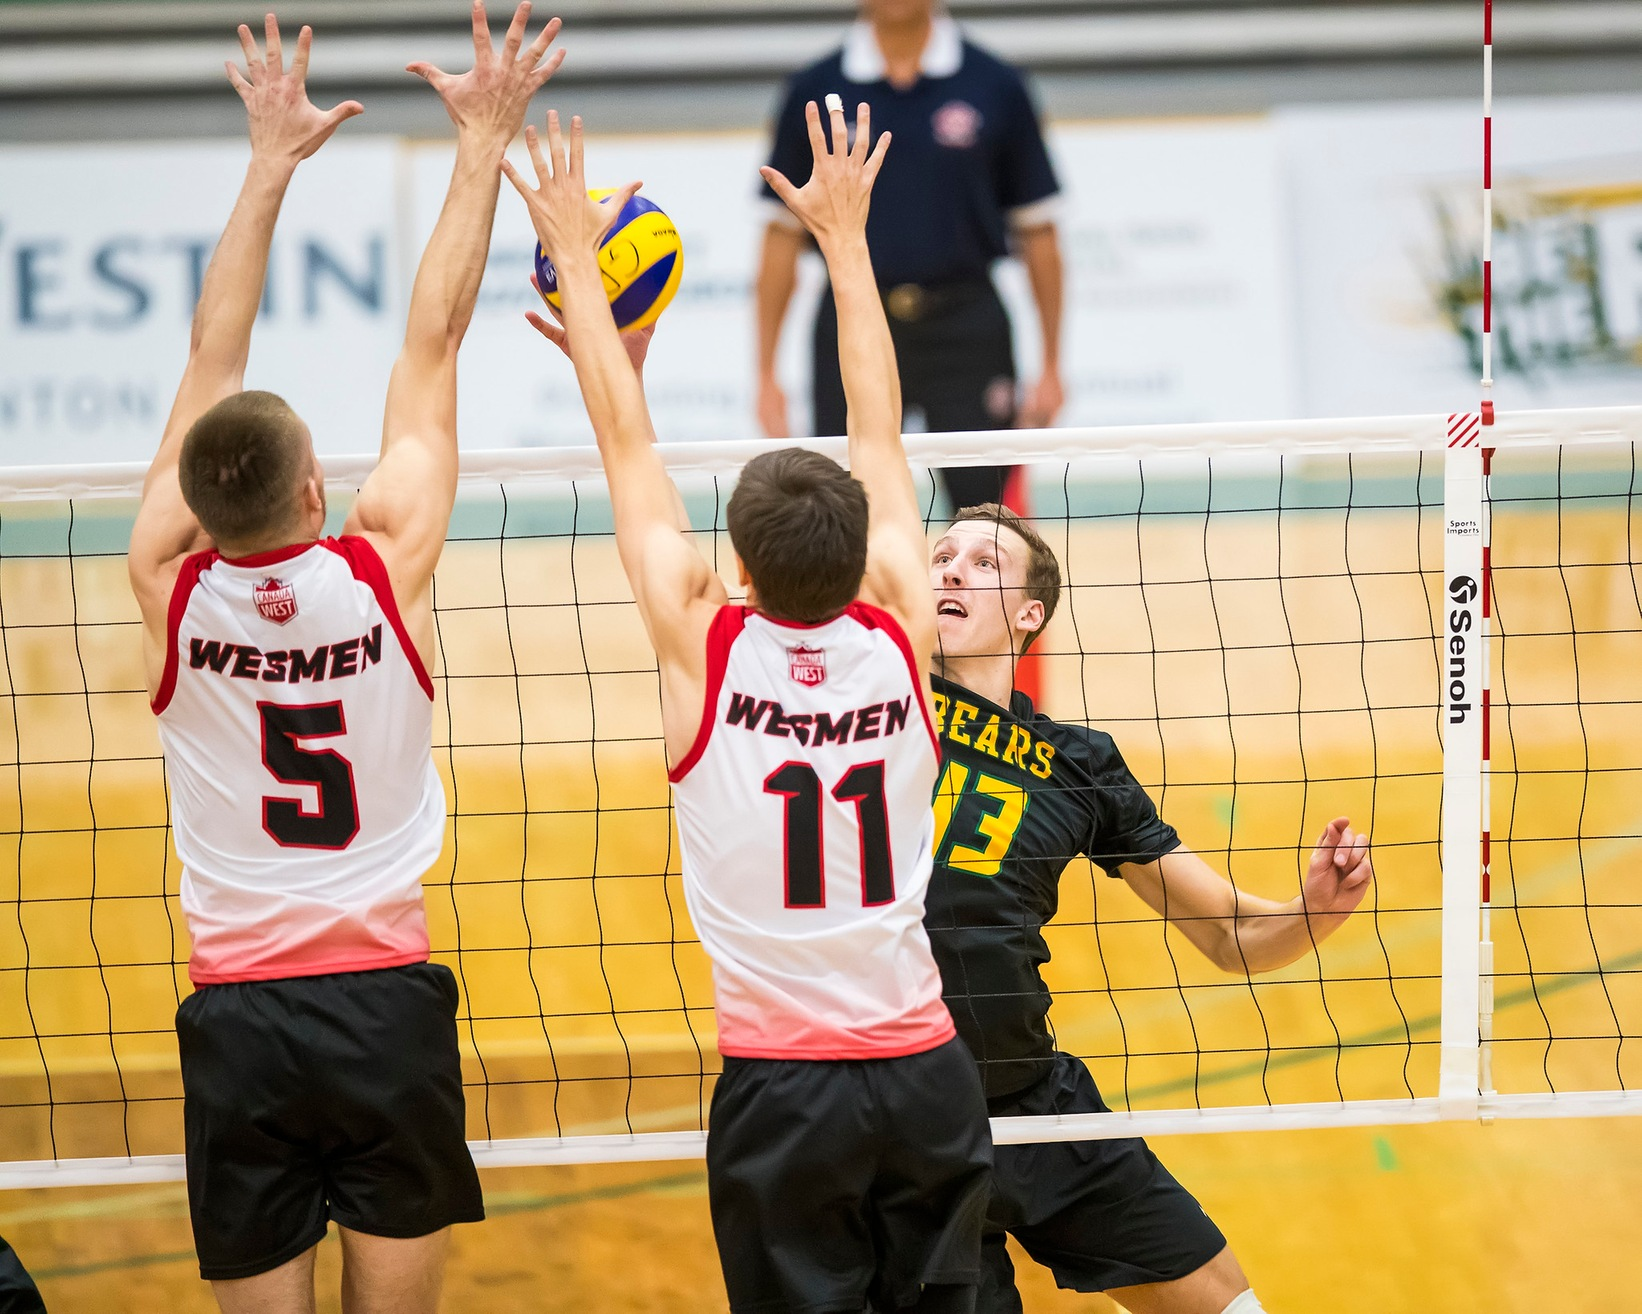 Keegan Teetaert (5) and Mikael Clegg team up to try and block an Alberta attack during men's volleyball action Friday night in Edmonton. (Dan Voaklander photo)